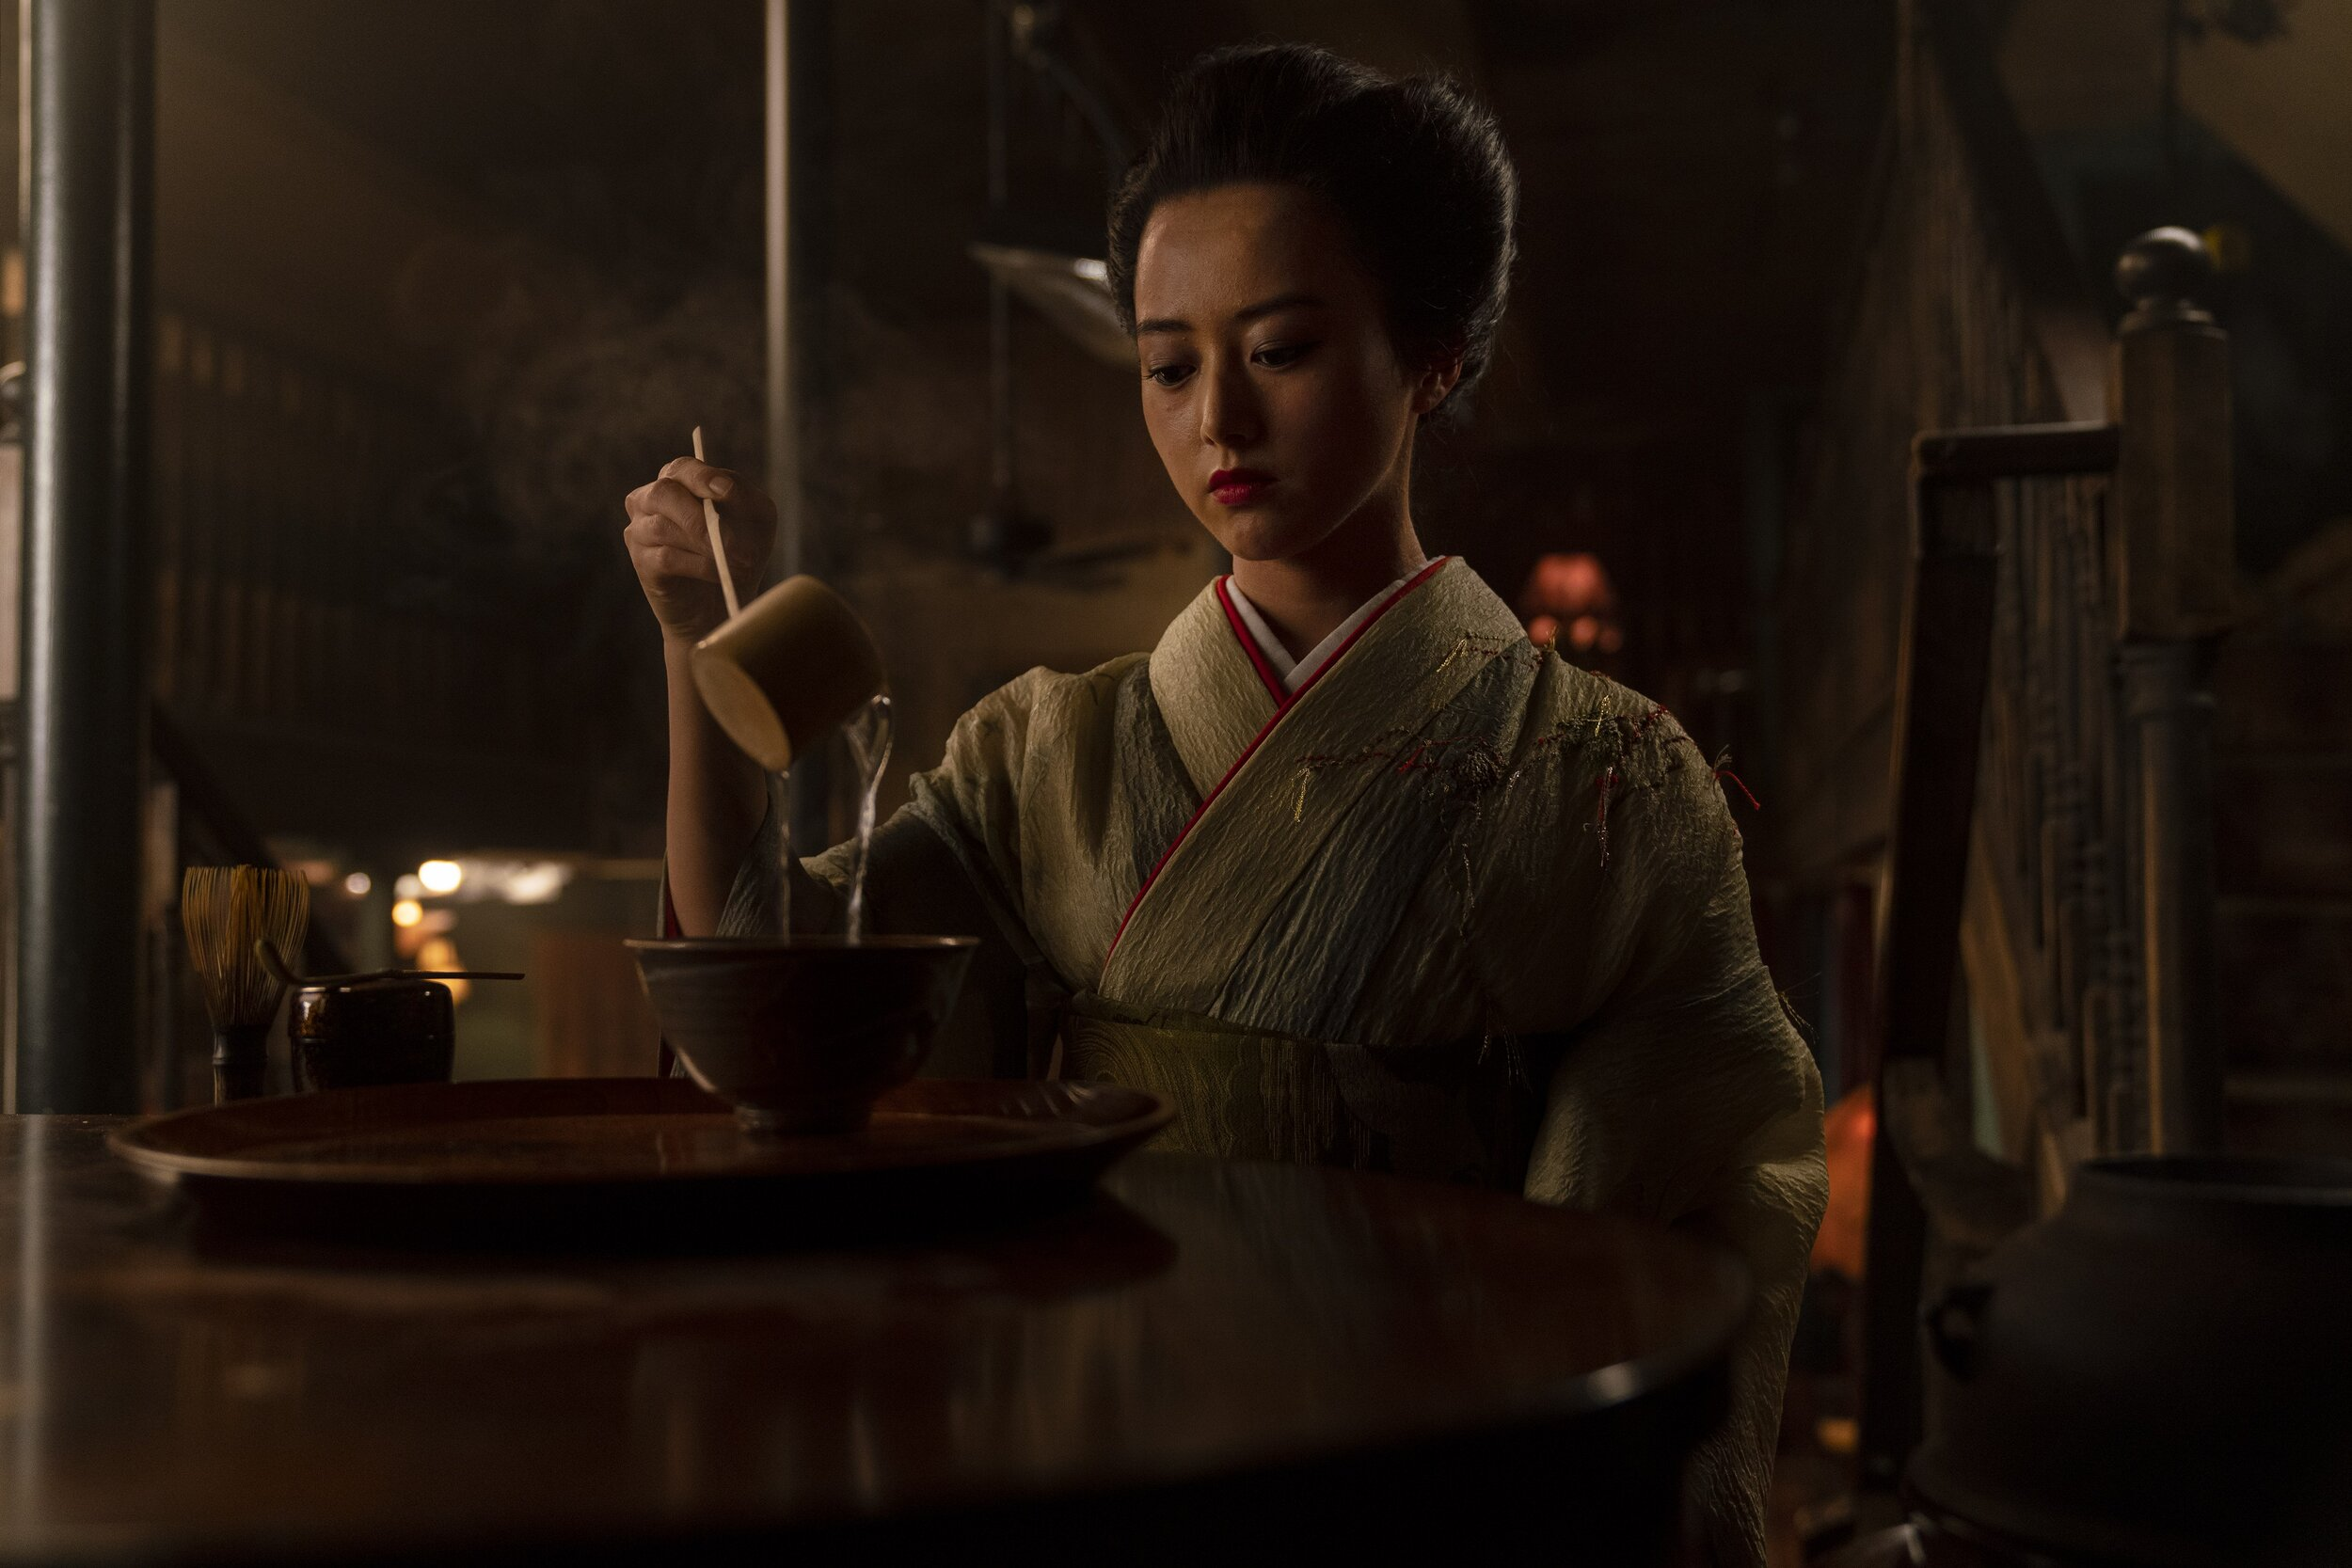 The monster in AMC's new season of  The Terror  takes human form